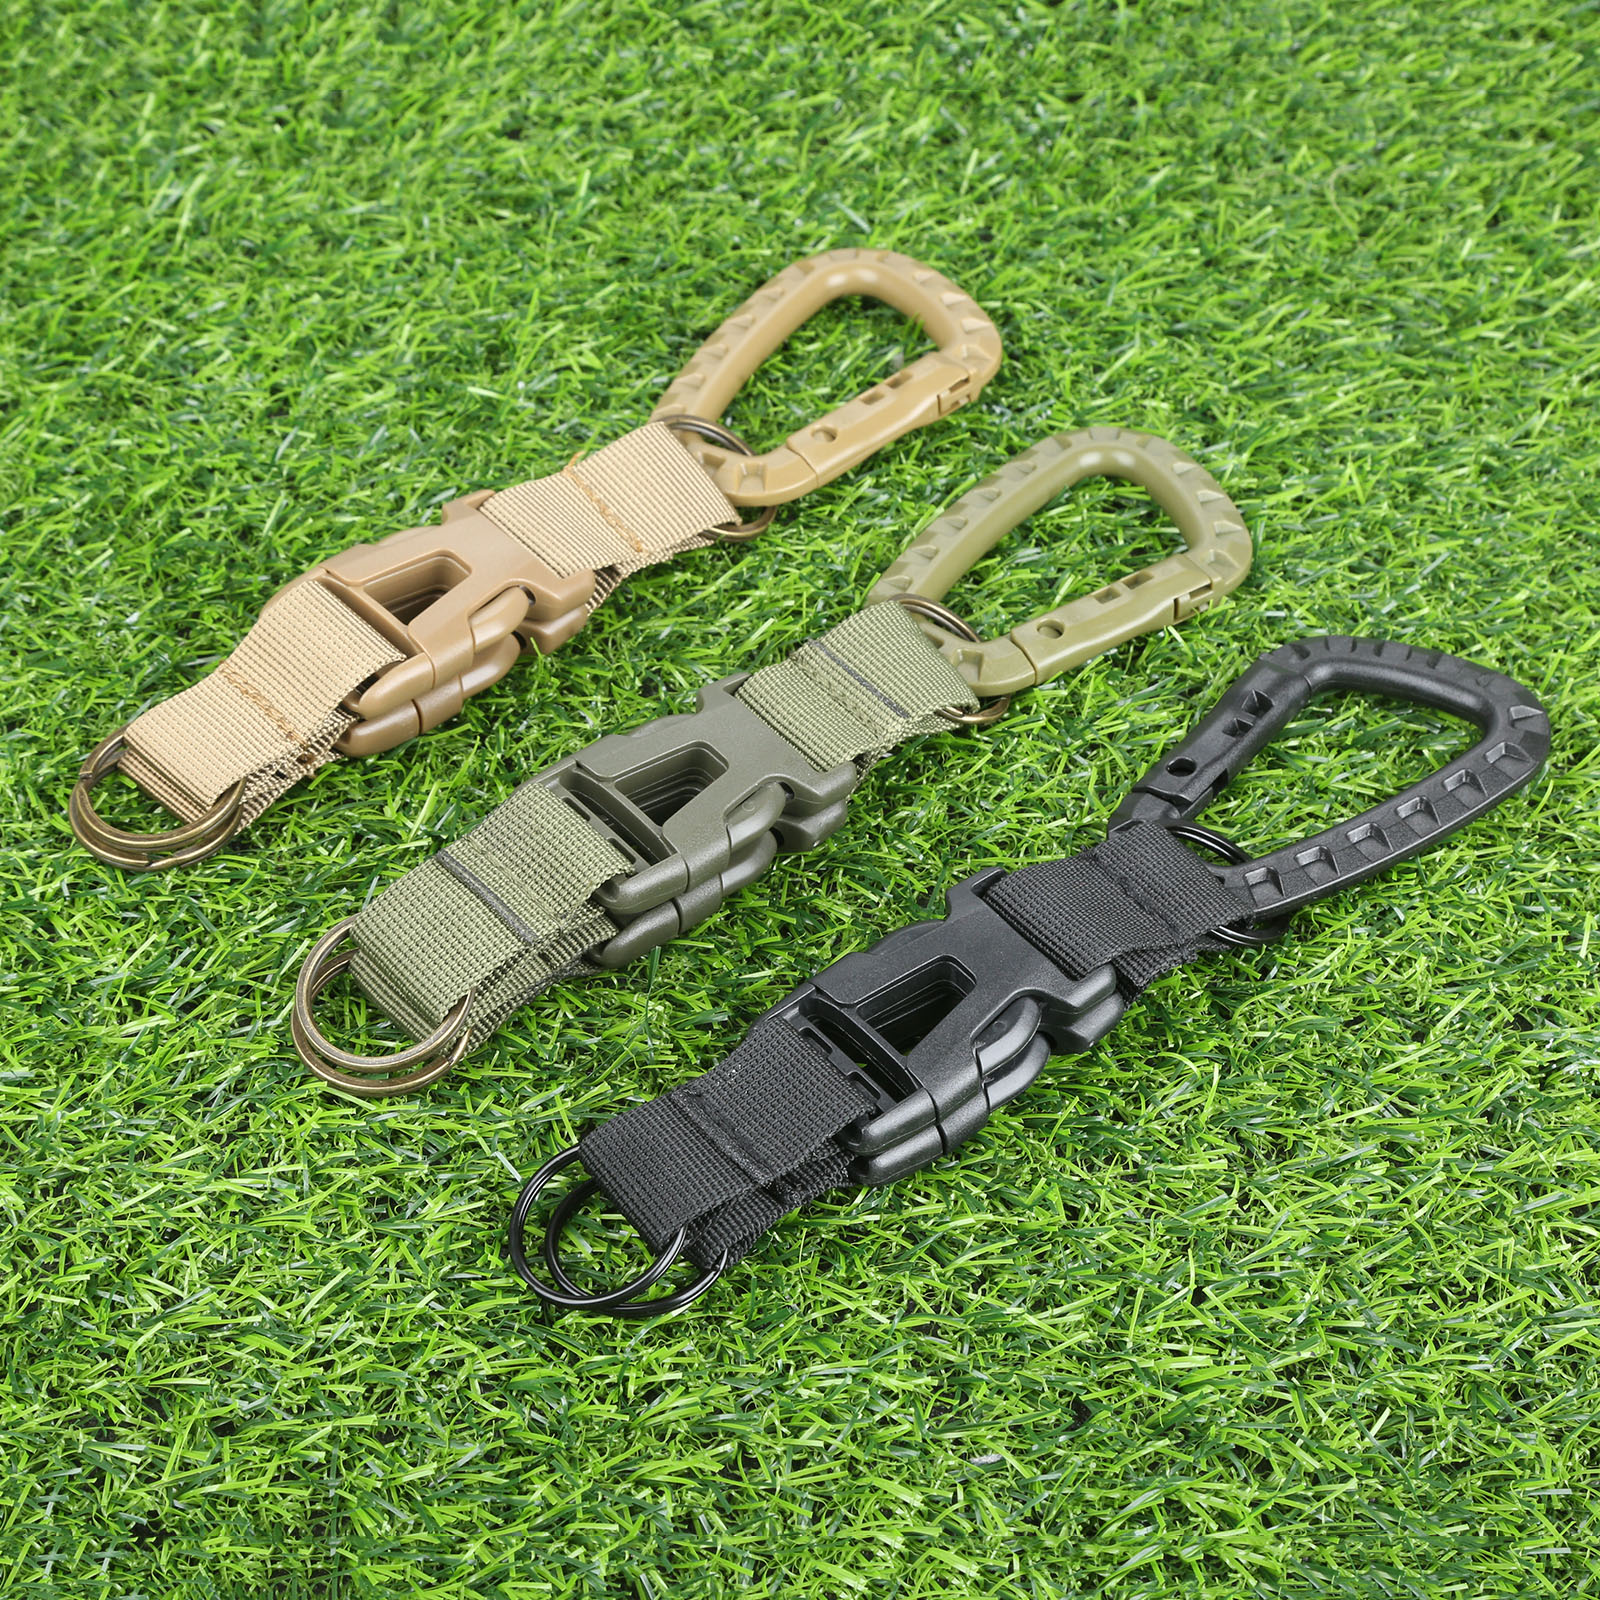 Tactical Backpack Carabiner Shackle Keychain Buckle Hook Molle Webbing Keychain Strap Belt Clip Military EDC Outdoor Multi Tools